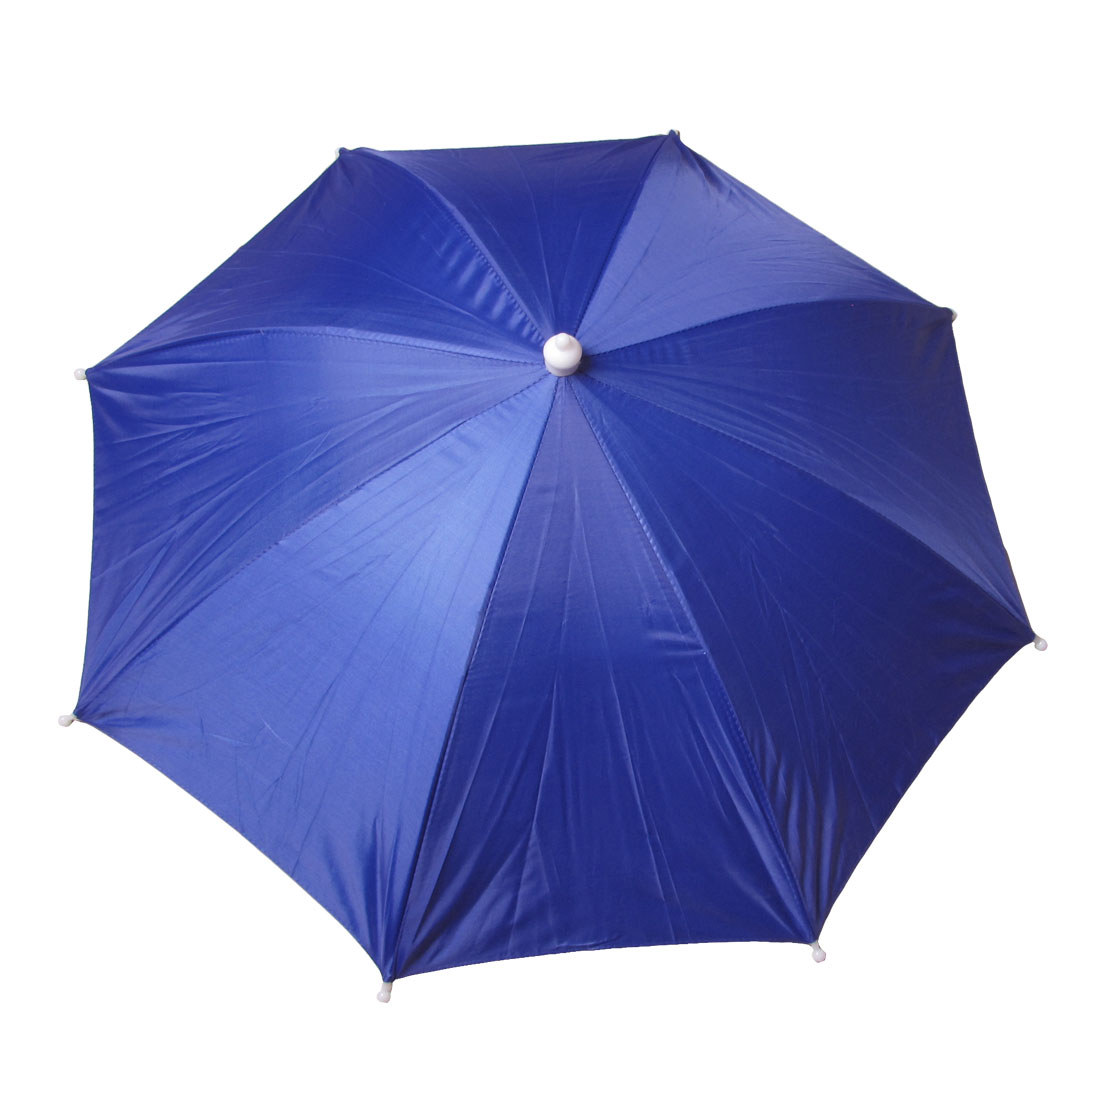 Fishing Camping Sun Rain Shade Umbrella Hat Blue